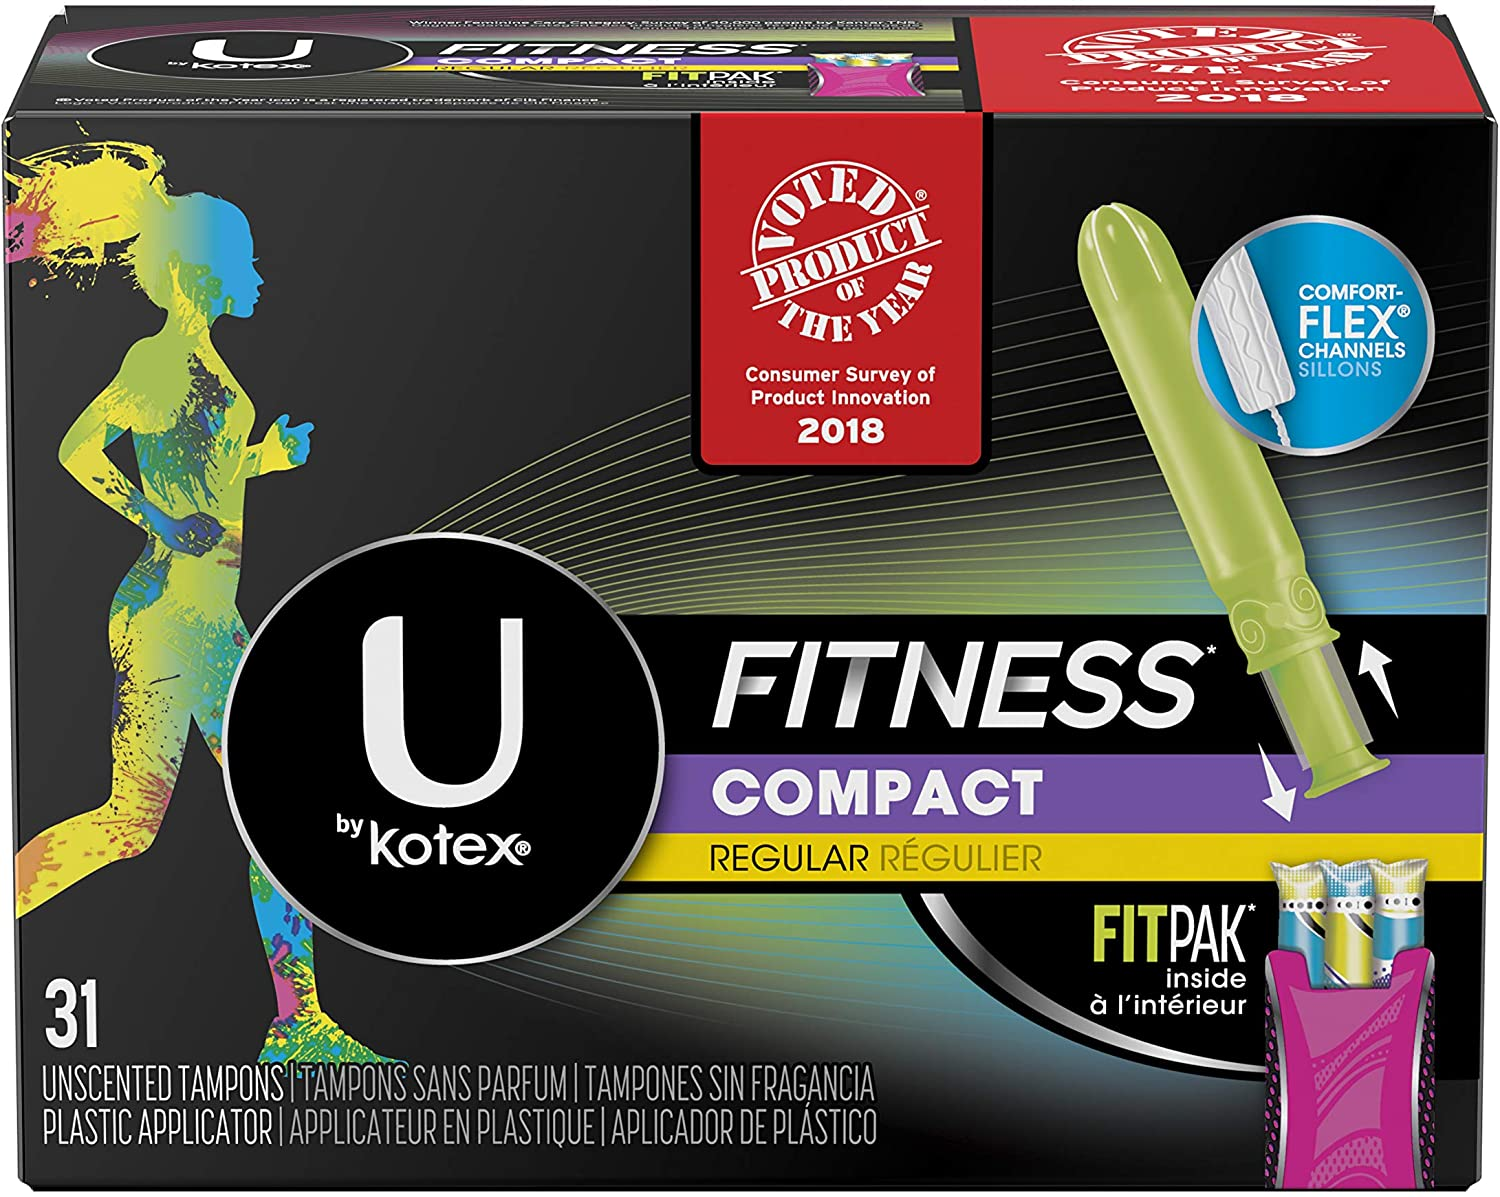 Luxury goods U by security Kotex Fitness Tampons Regular Frag with Absorbency FITPAK